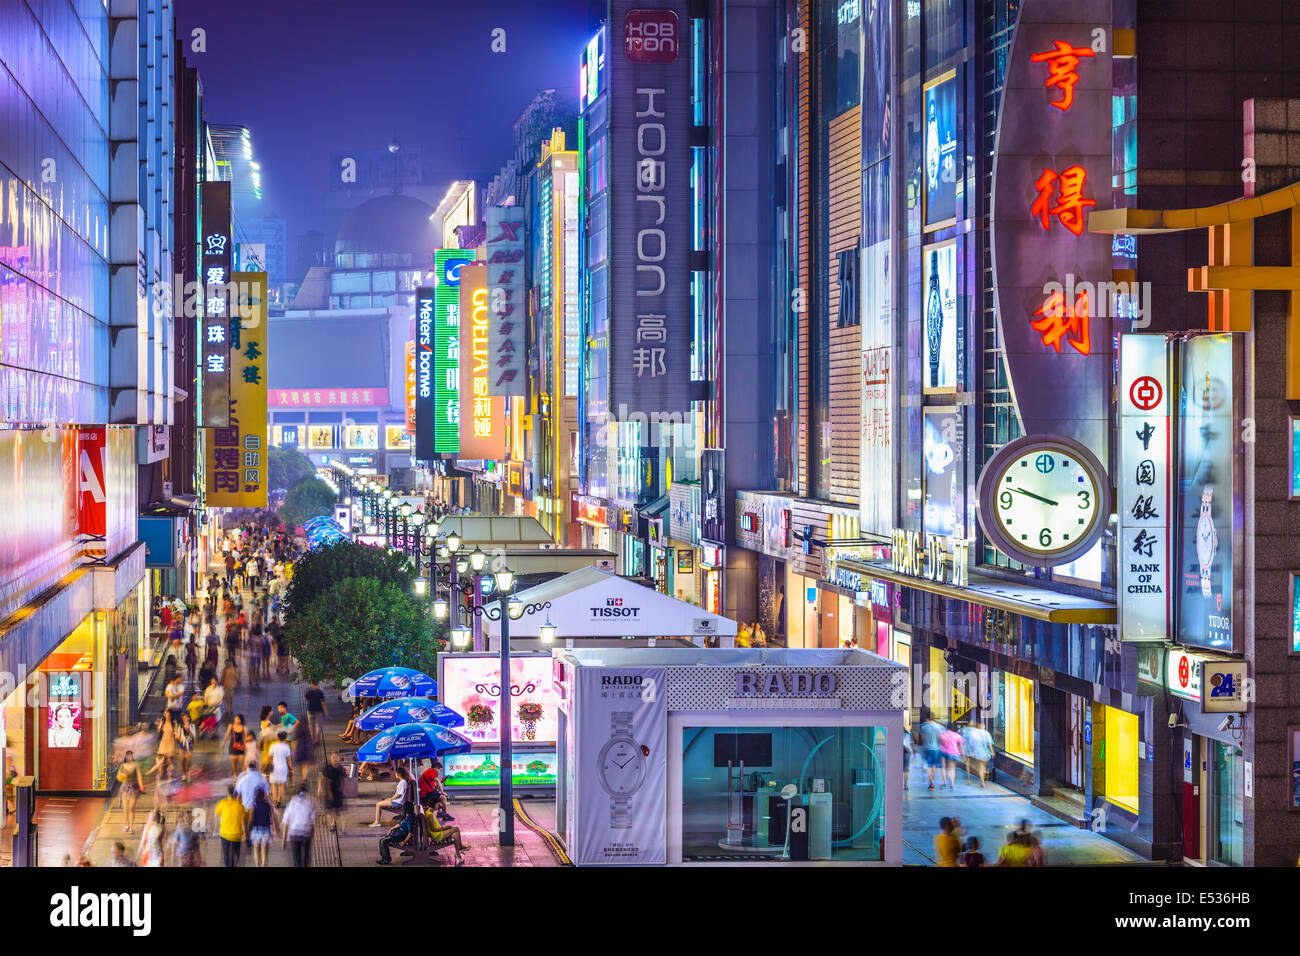 CHENGDU, CHINA - JUNE 2, 2014: Chunxi Street at night. - Stock Image